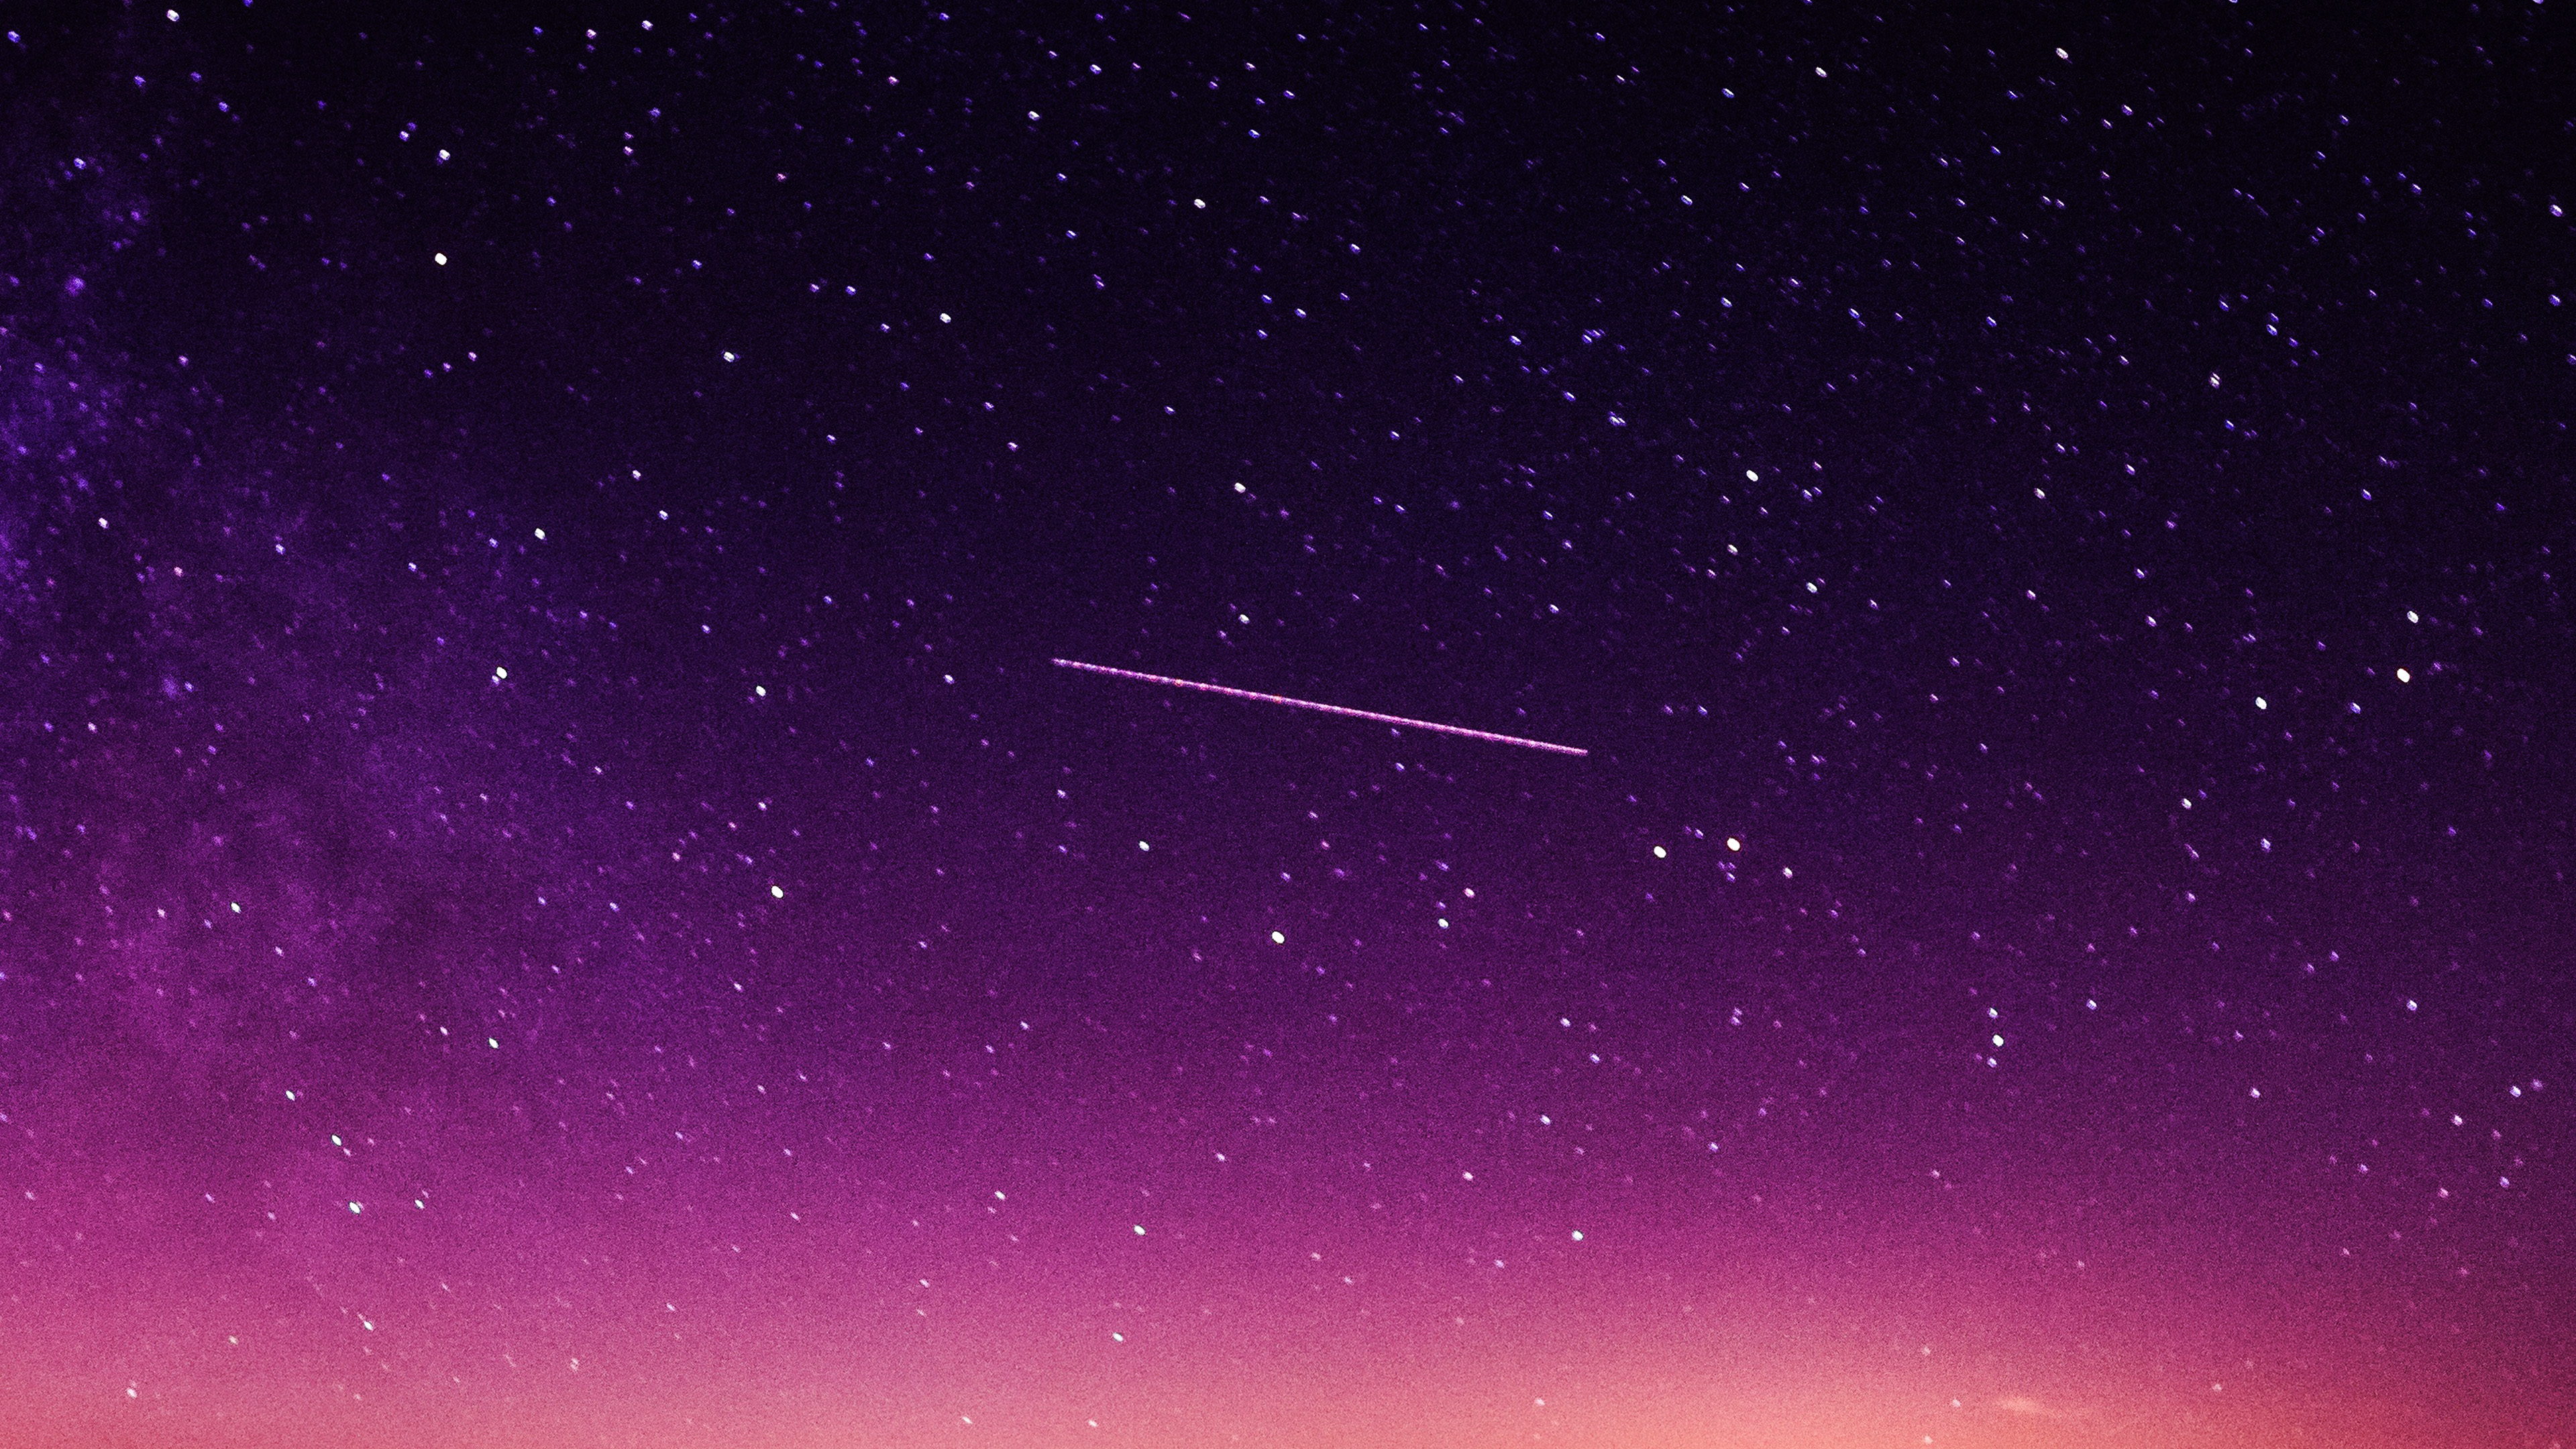 Night Sky Stars Background Psdgraphics - HD 1600×900